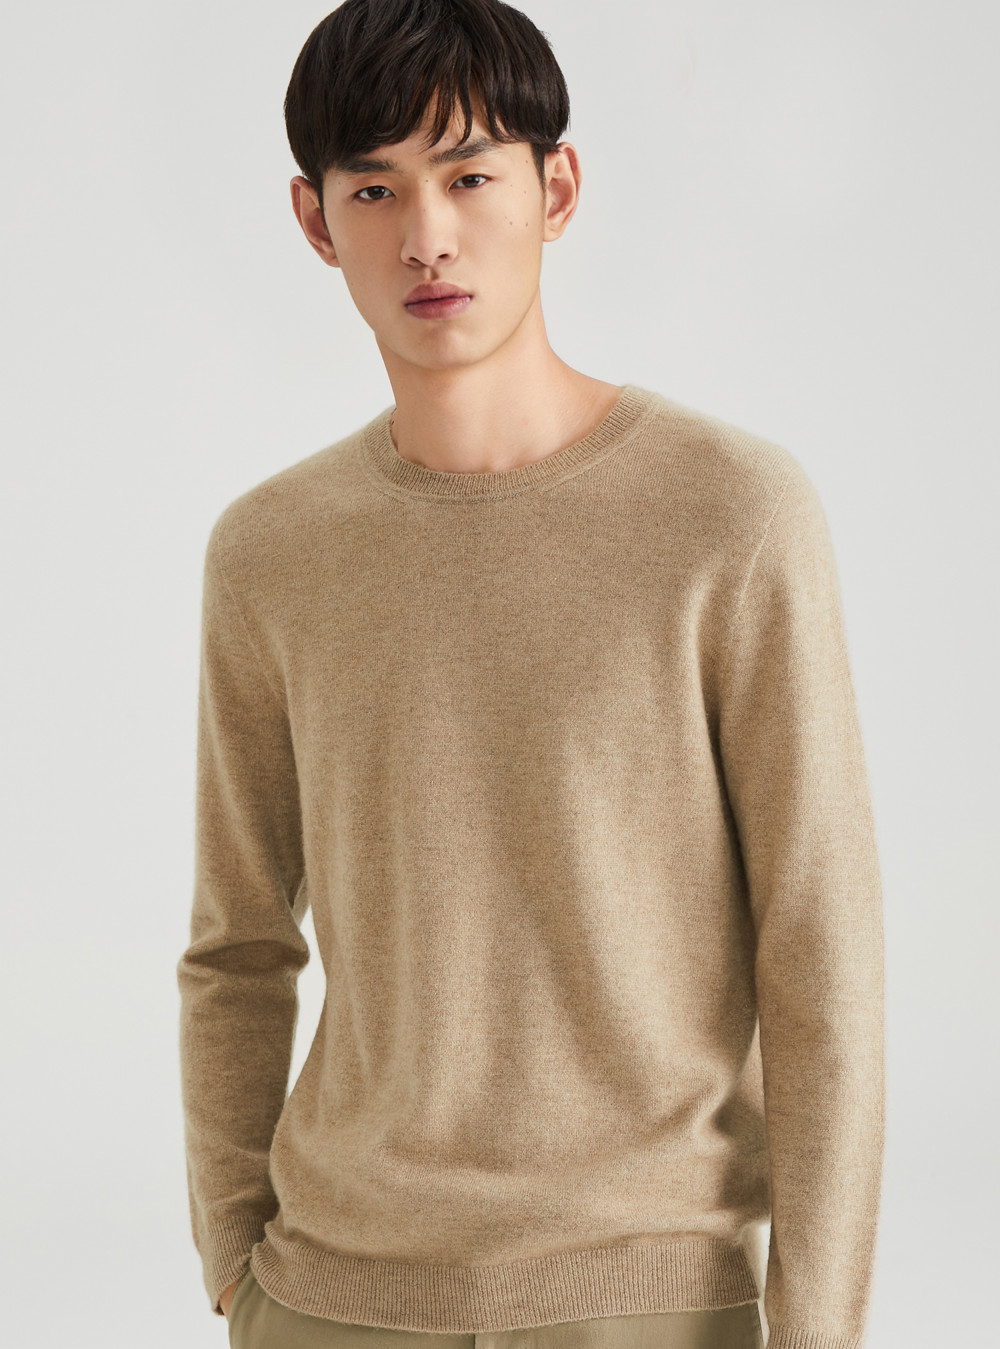 Icicle Men Iconic Seamless Knitwear 09